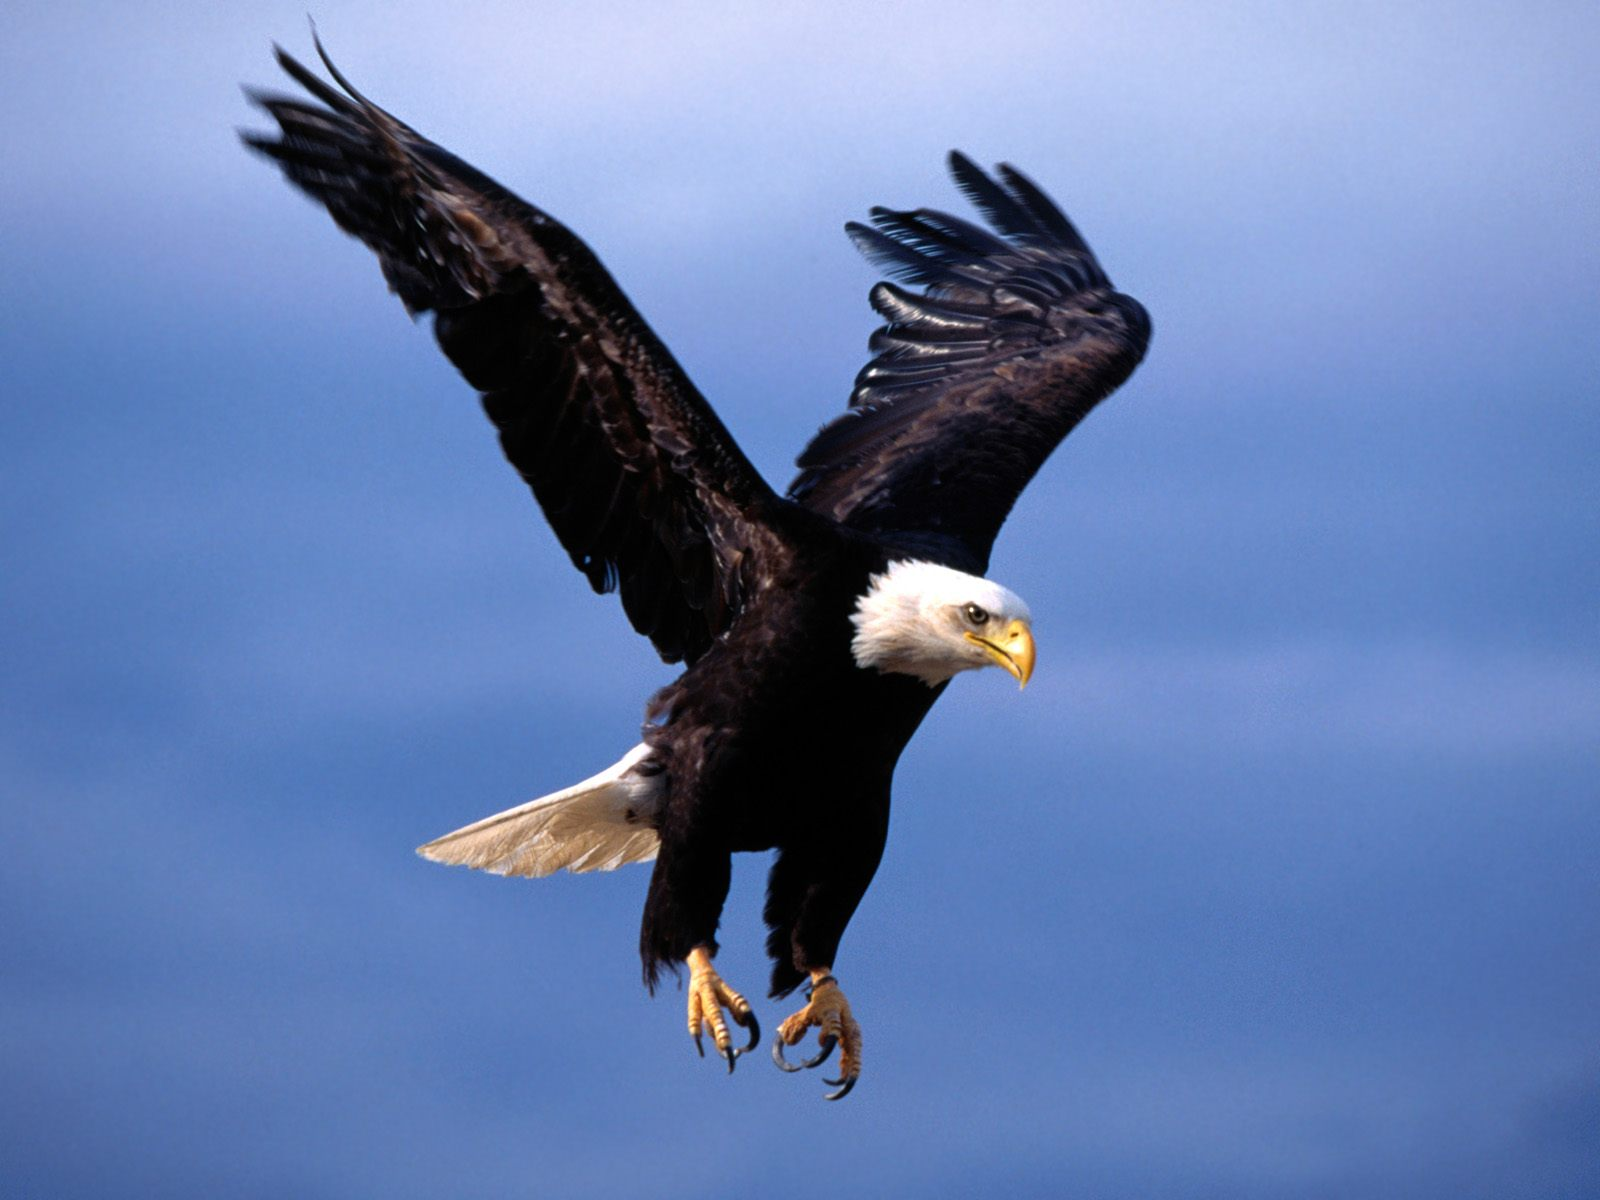 http://4.bp.blogspot.com/-r5iJyX0gWyo/TjmQ0xspCzI/AAAAAAAAAO0/7UK4OeonTps/s1600/Bald+Eagle+Wallpapers+2.jpg